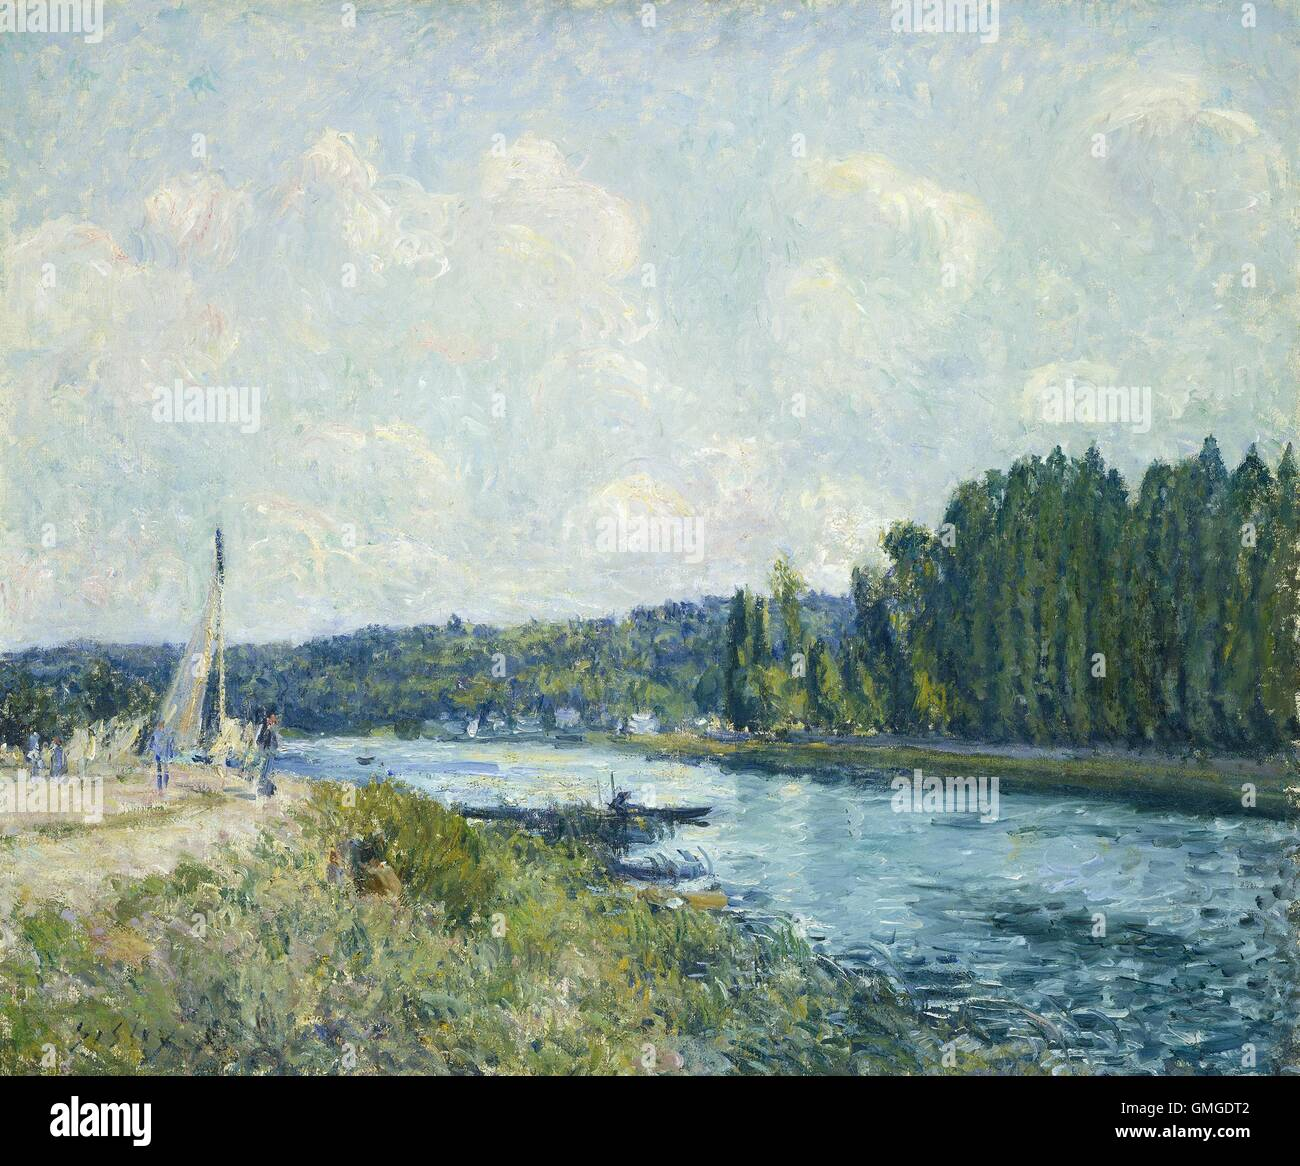 The Banks of the Oise, by Alfred Sisley, 1877-78, French impressionist painting, oil on canvas. River landscape - Stock Image